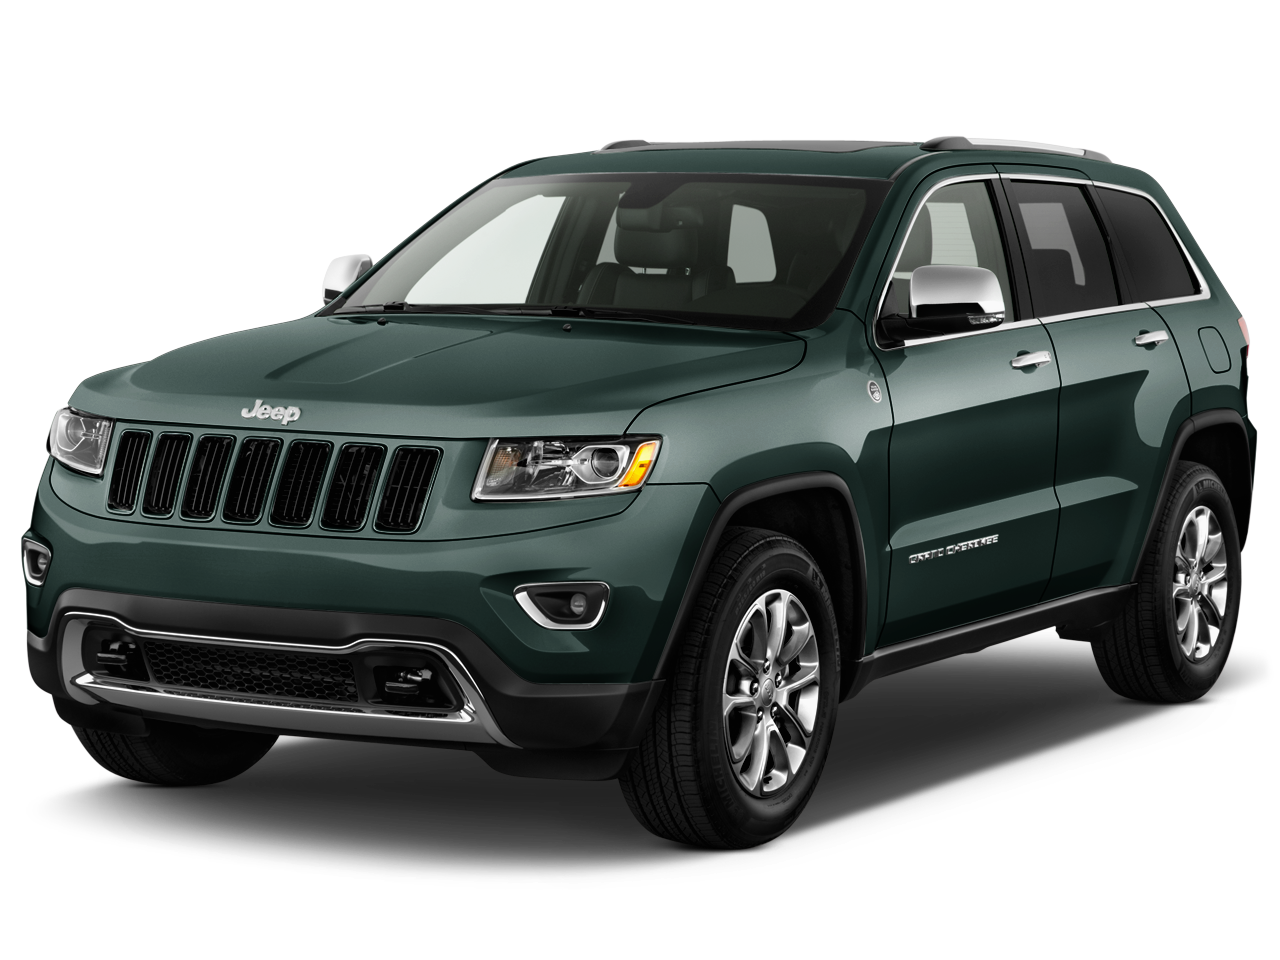 used 2014 jeep grand cherokee limited near chantilly va pohanka acura. Black Bedroom Furniture Sets. Home Design Ideas